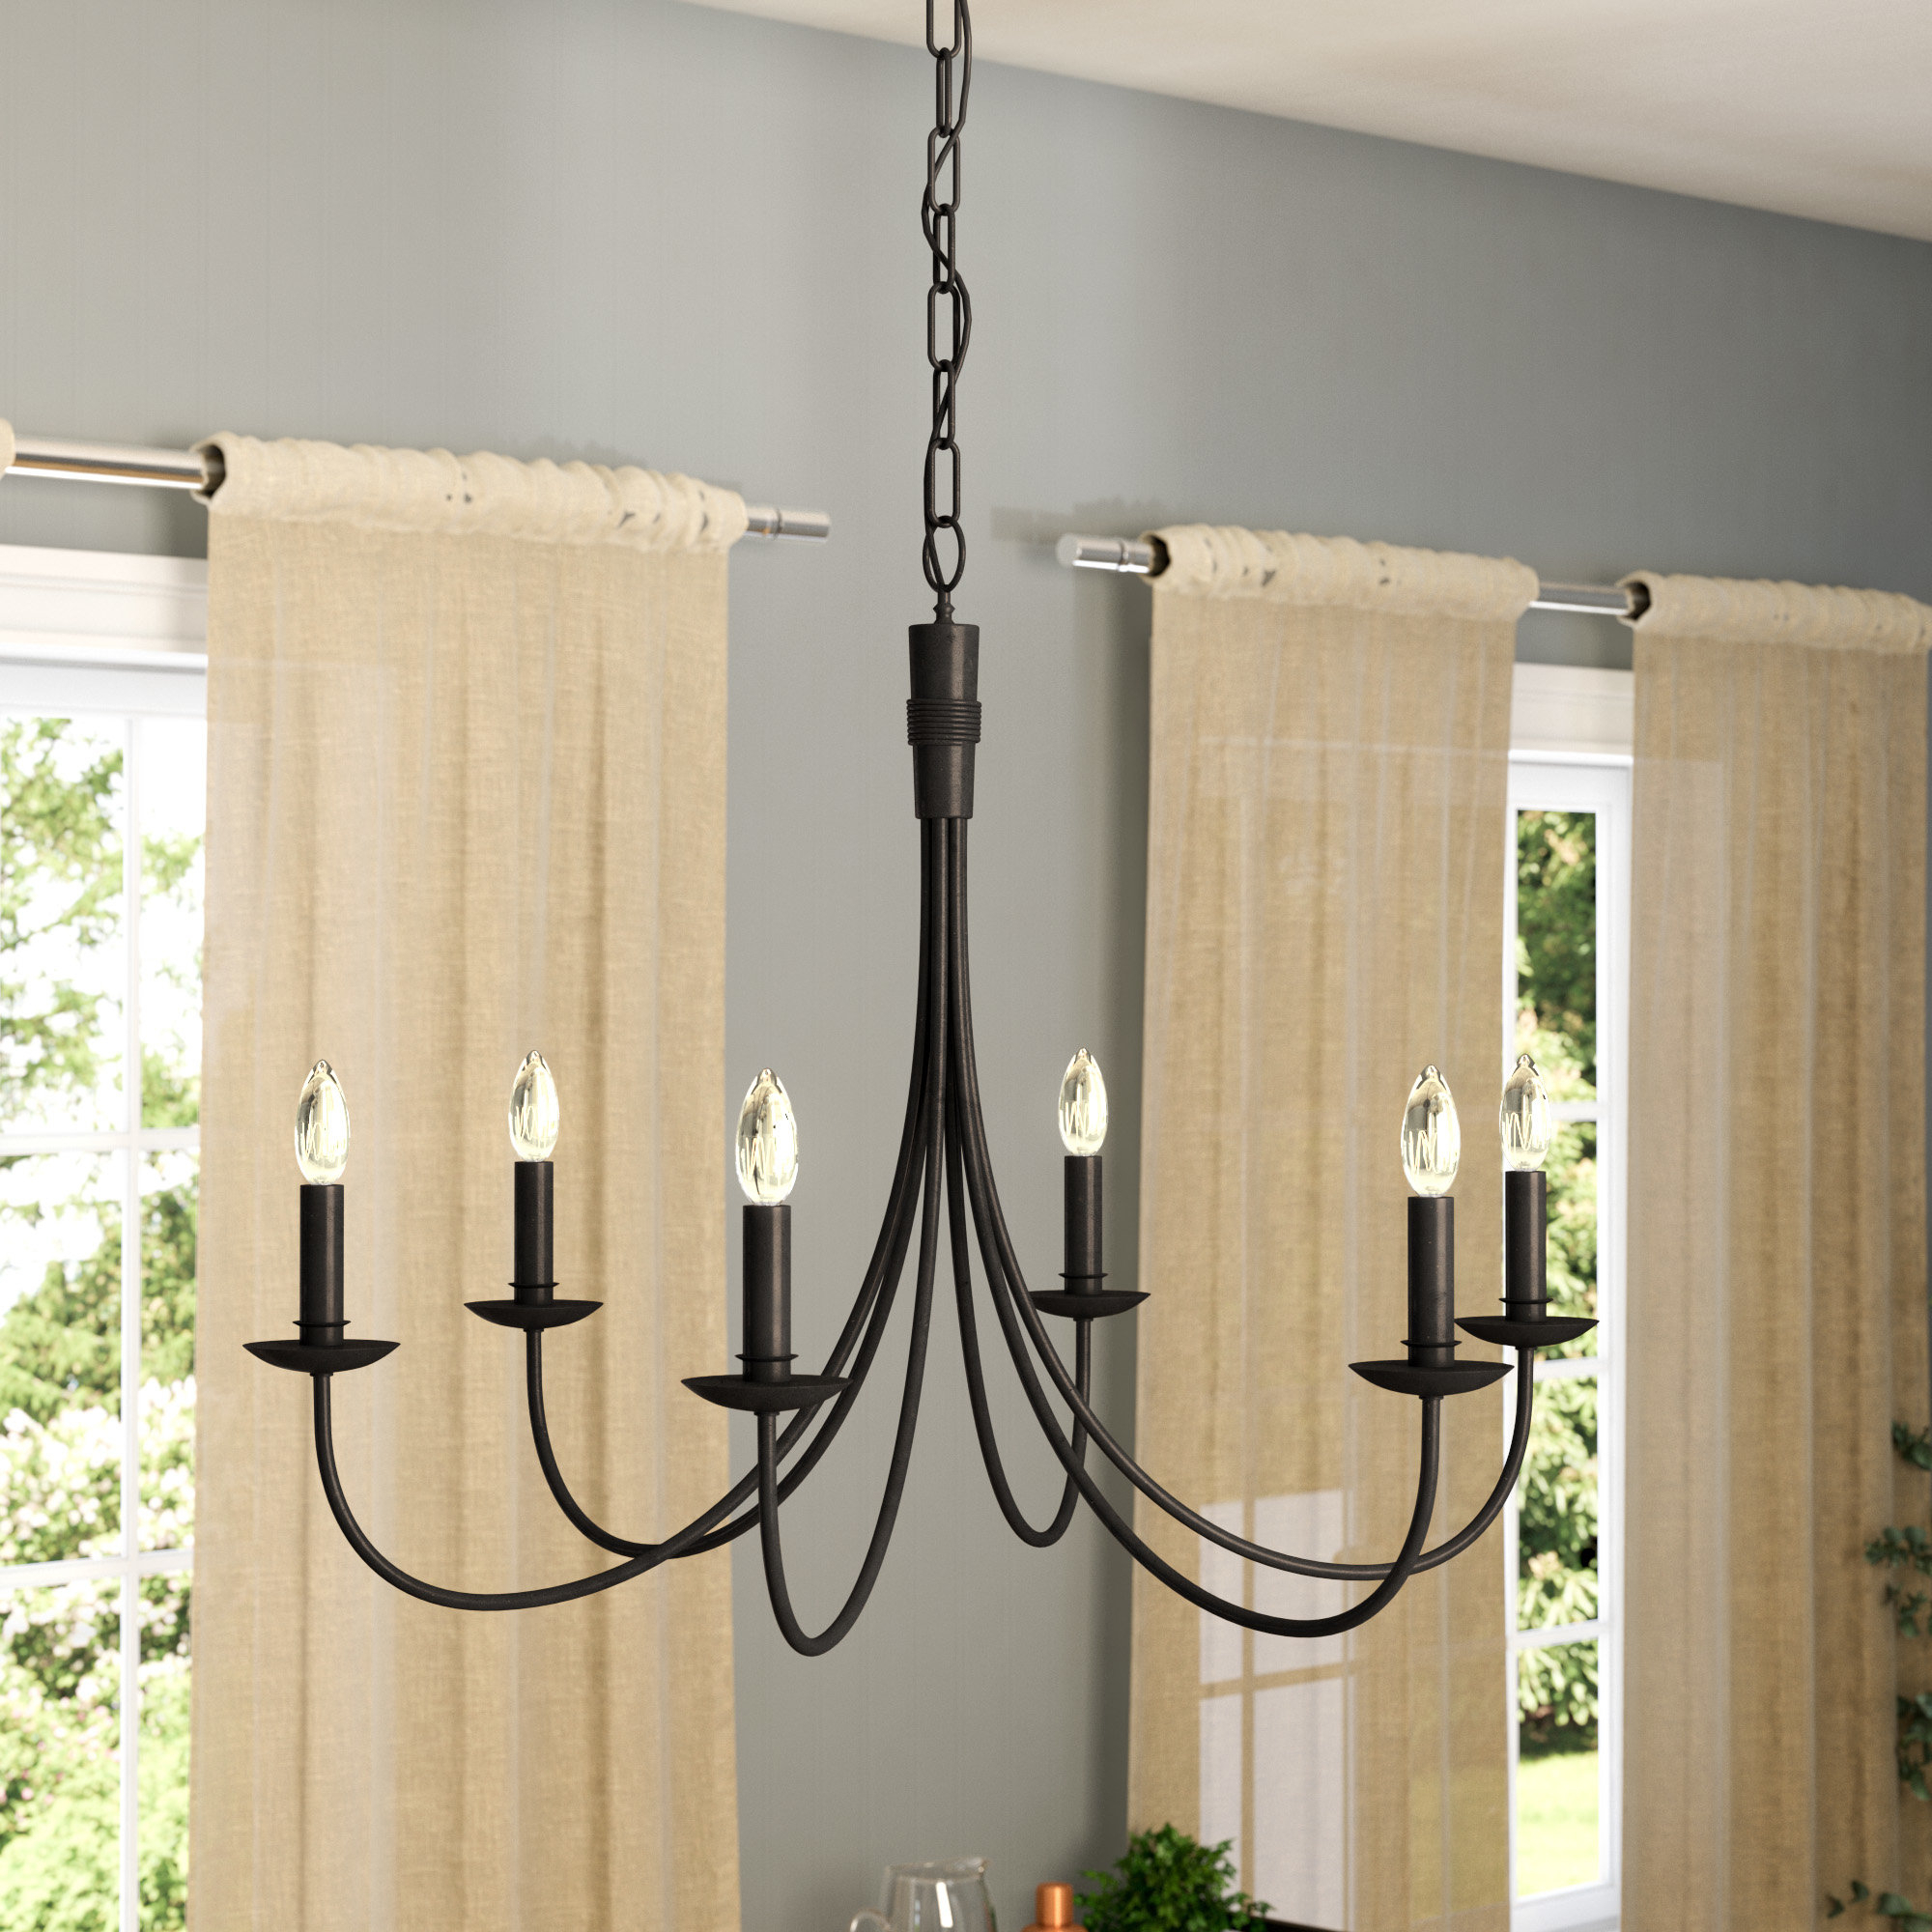 Hamza 6 Light Candle Style Chandeliers Pertaining To Widely Used Laurel Foundry Modern Farmhouse Souders 6 Light Candle Style (Gallery 5 of 20)